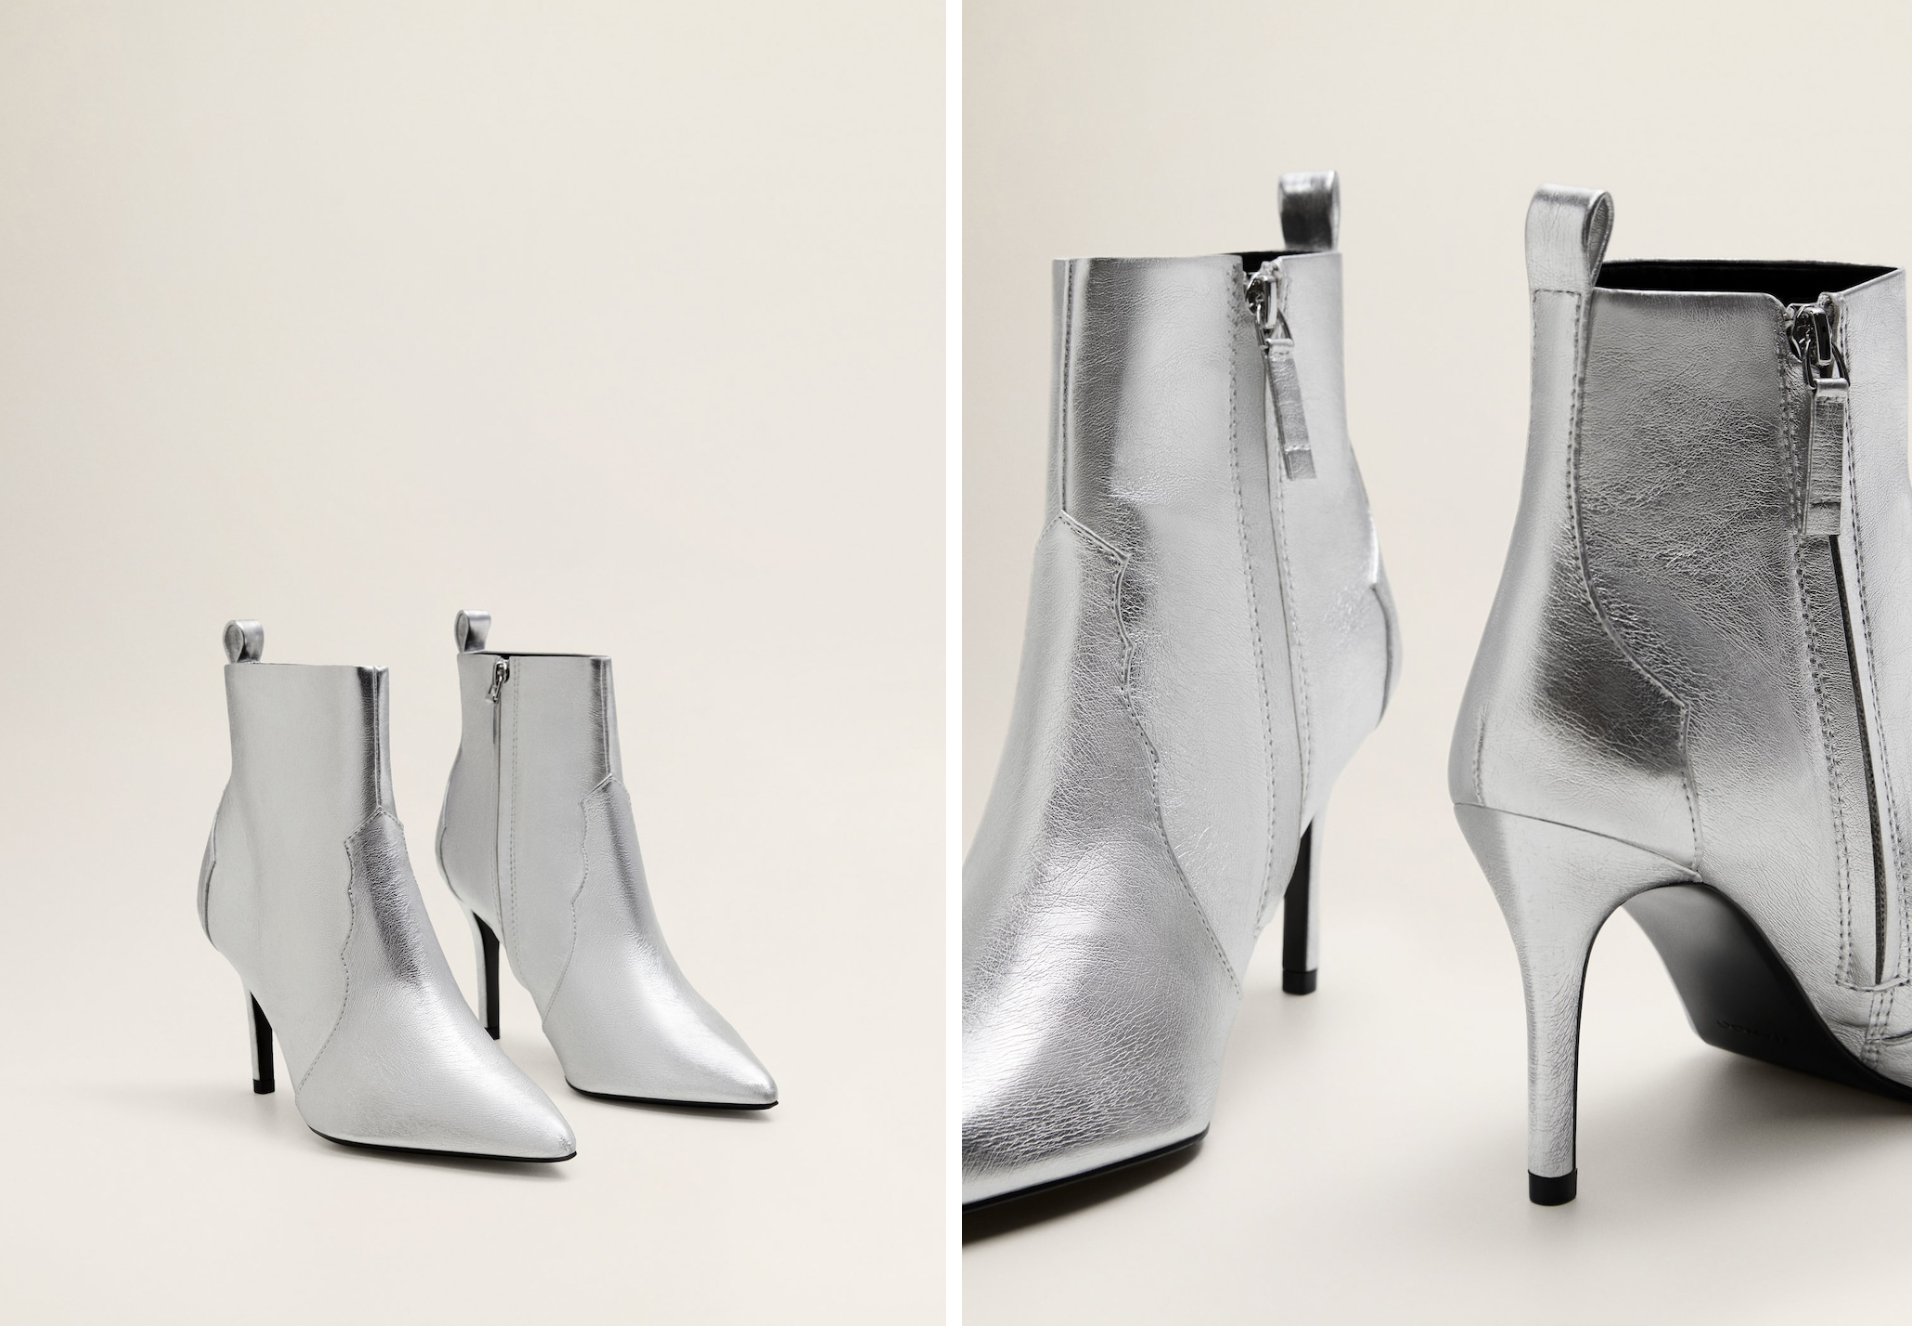 Gorgeous silver metallic heel boots - buy them here